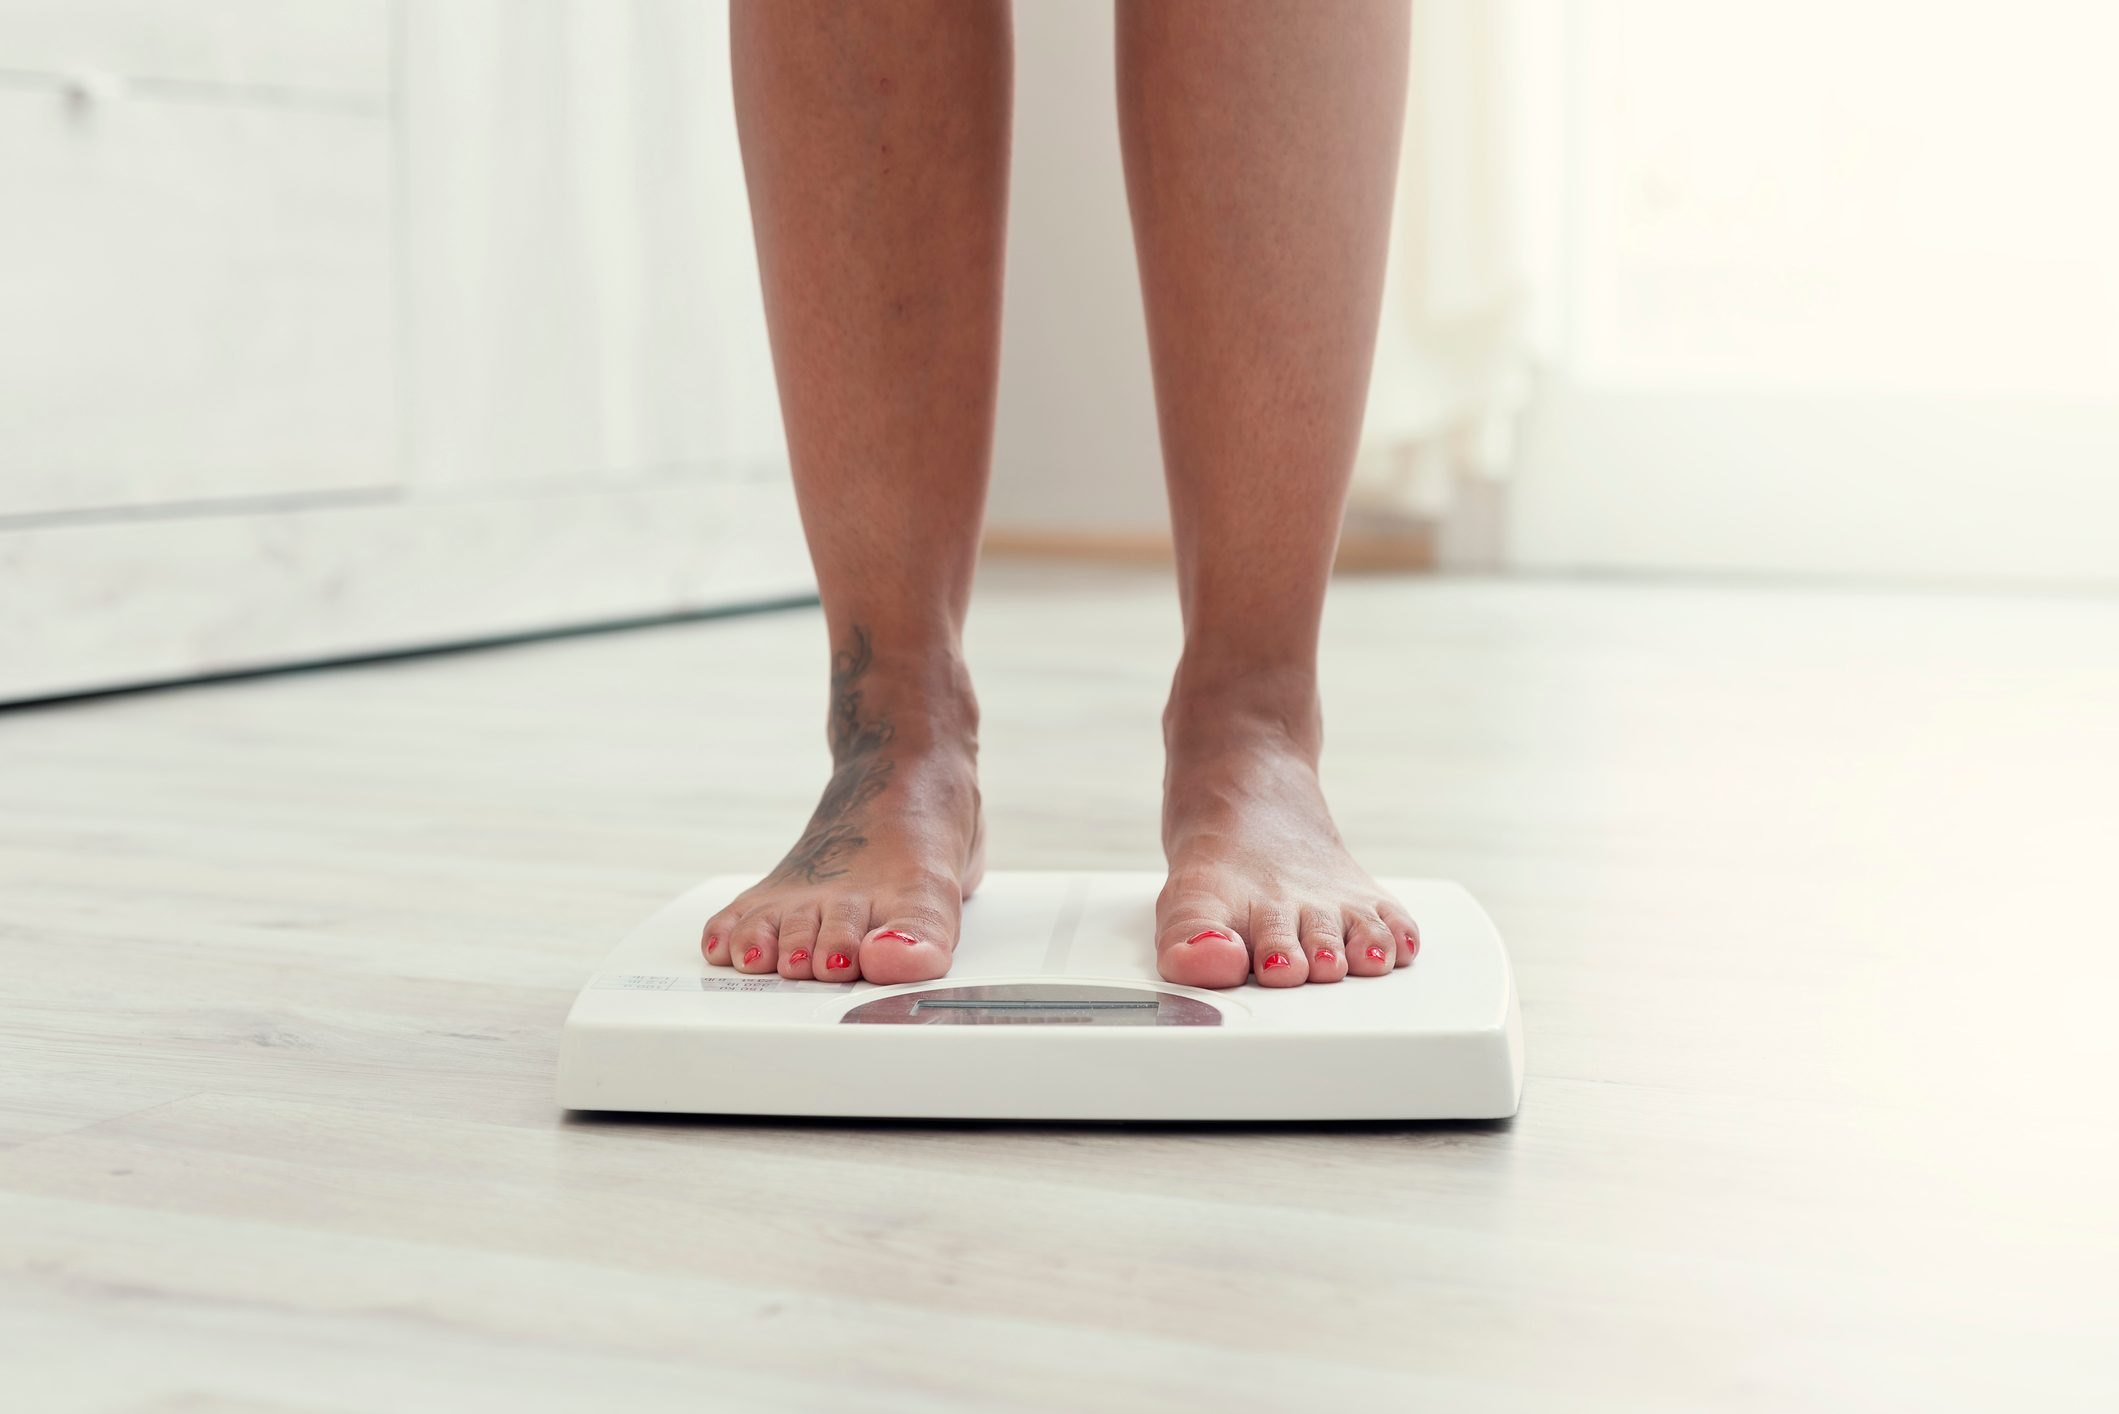 cropped shot of woman's feet on weight scale at home